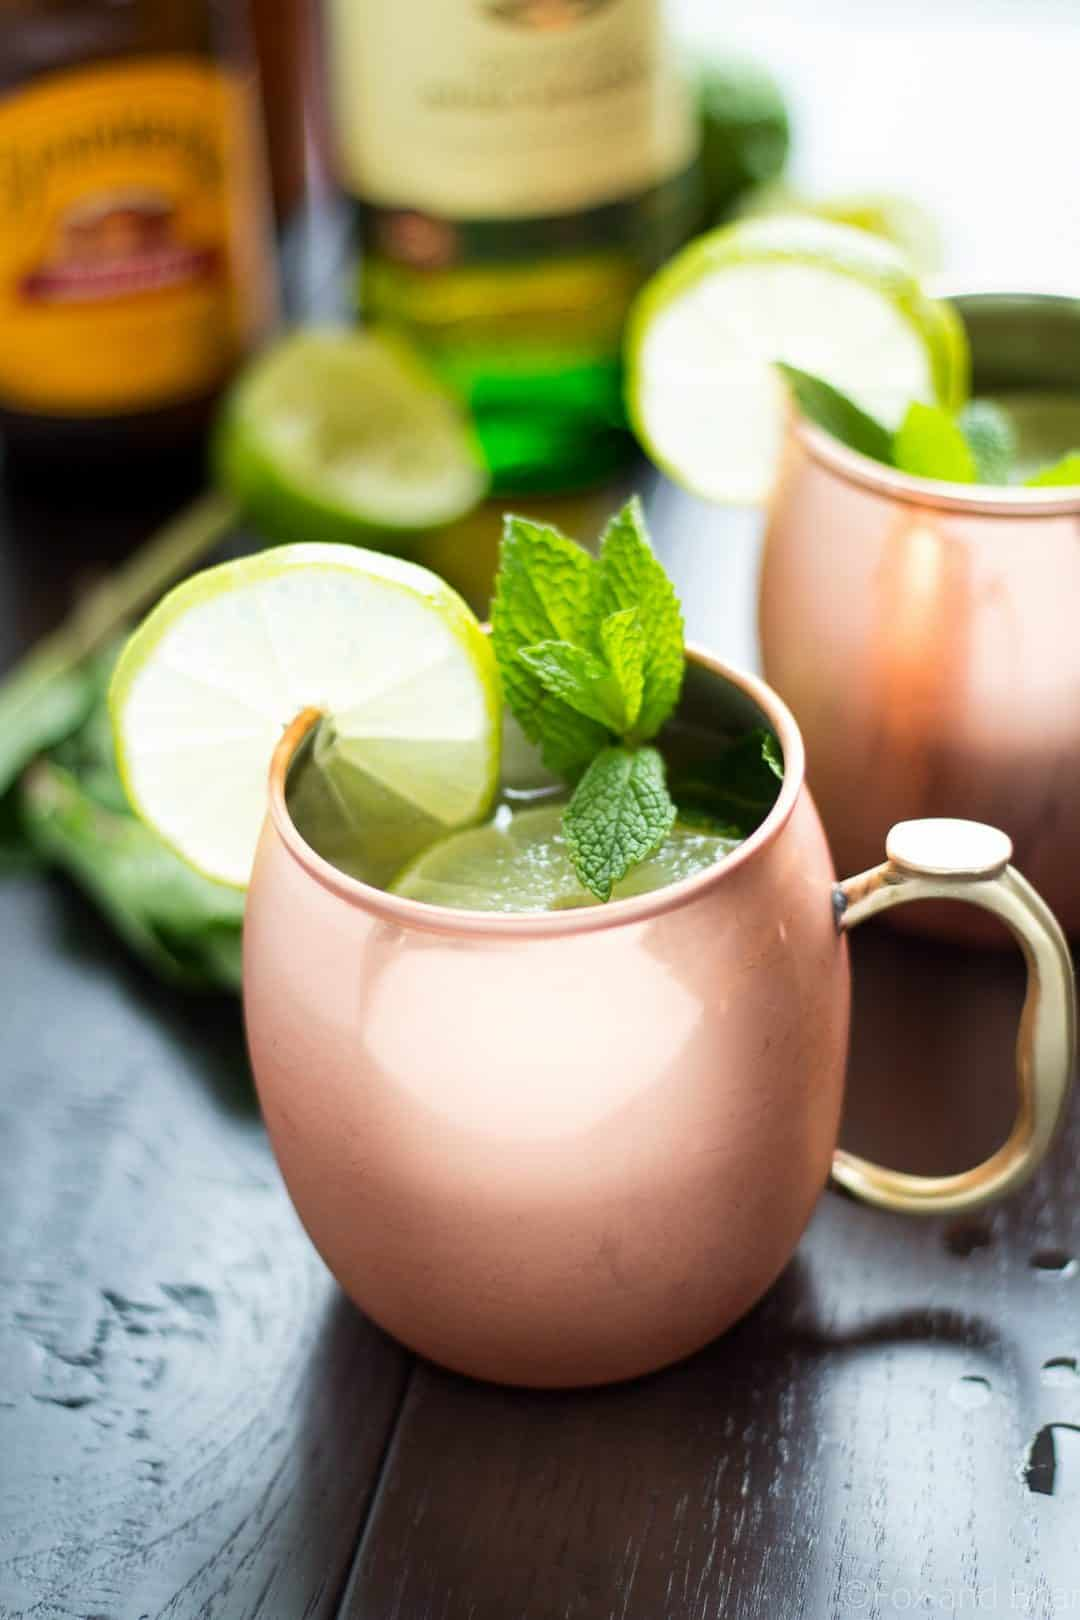 Irish mule cocktail, served in a copper mug